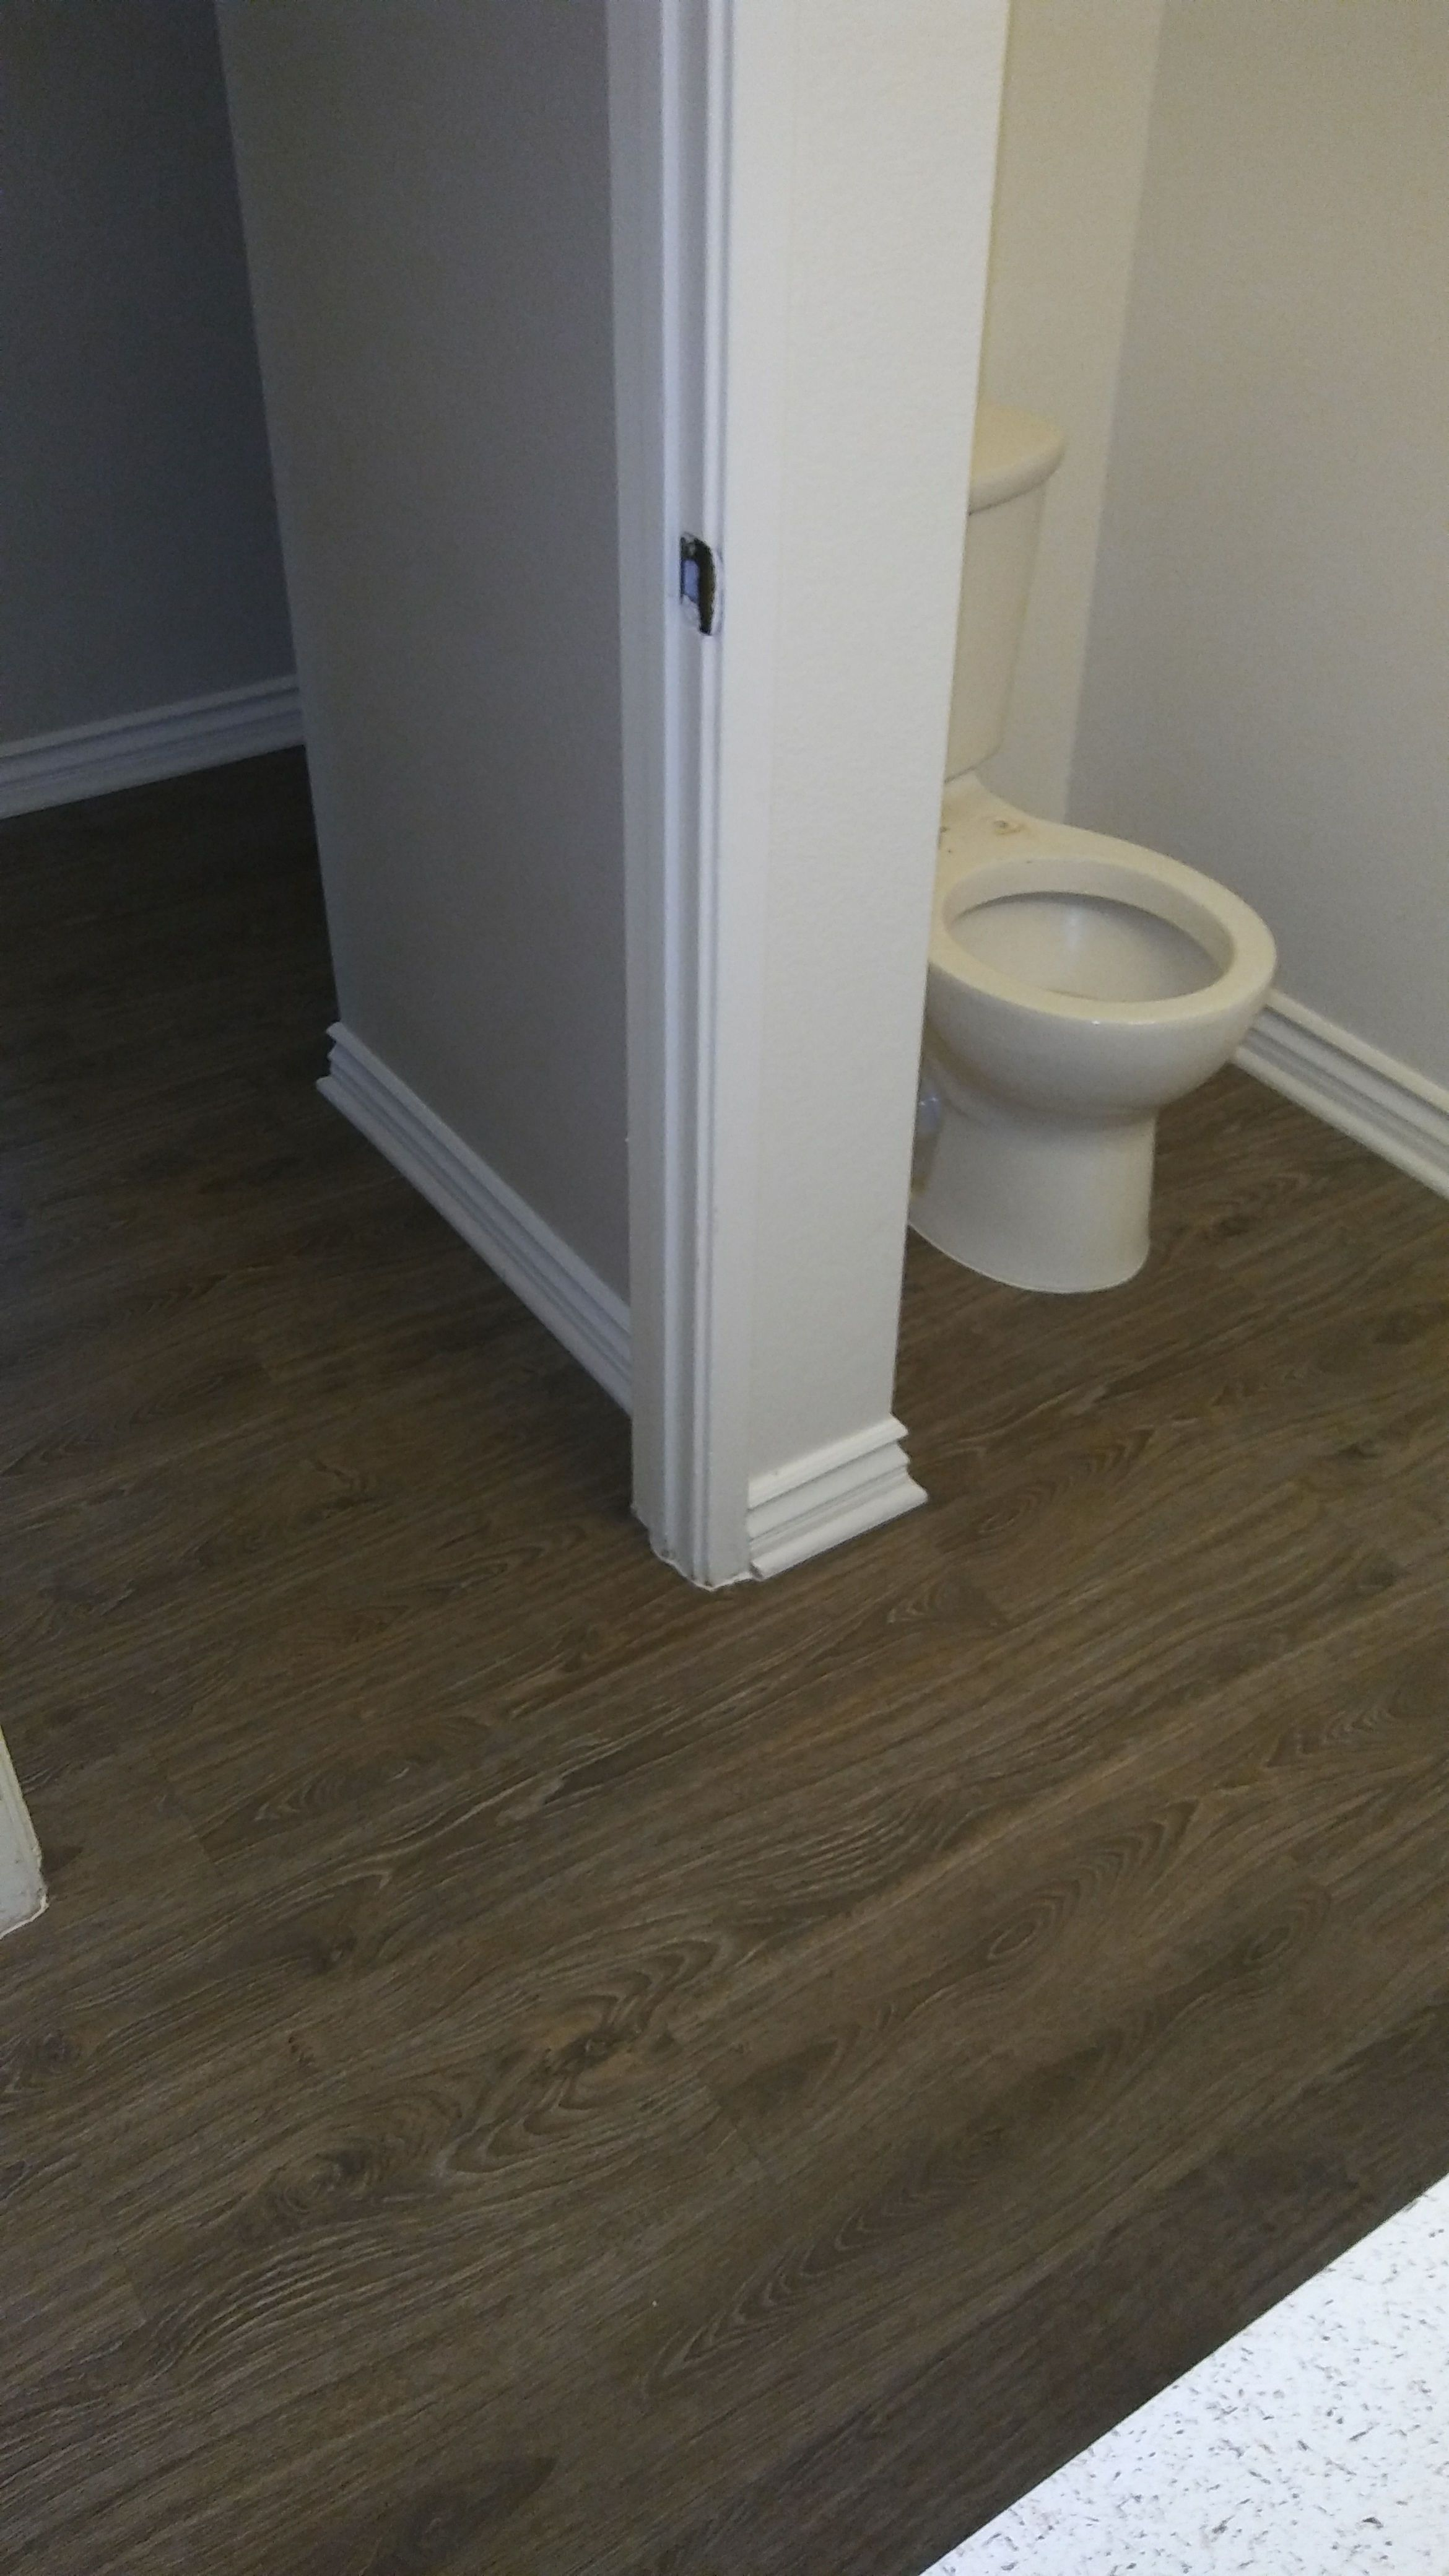 Plank Vinyl floors have a natural wood look and it's easy